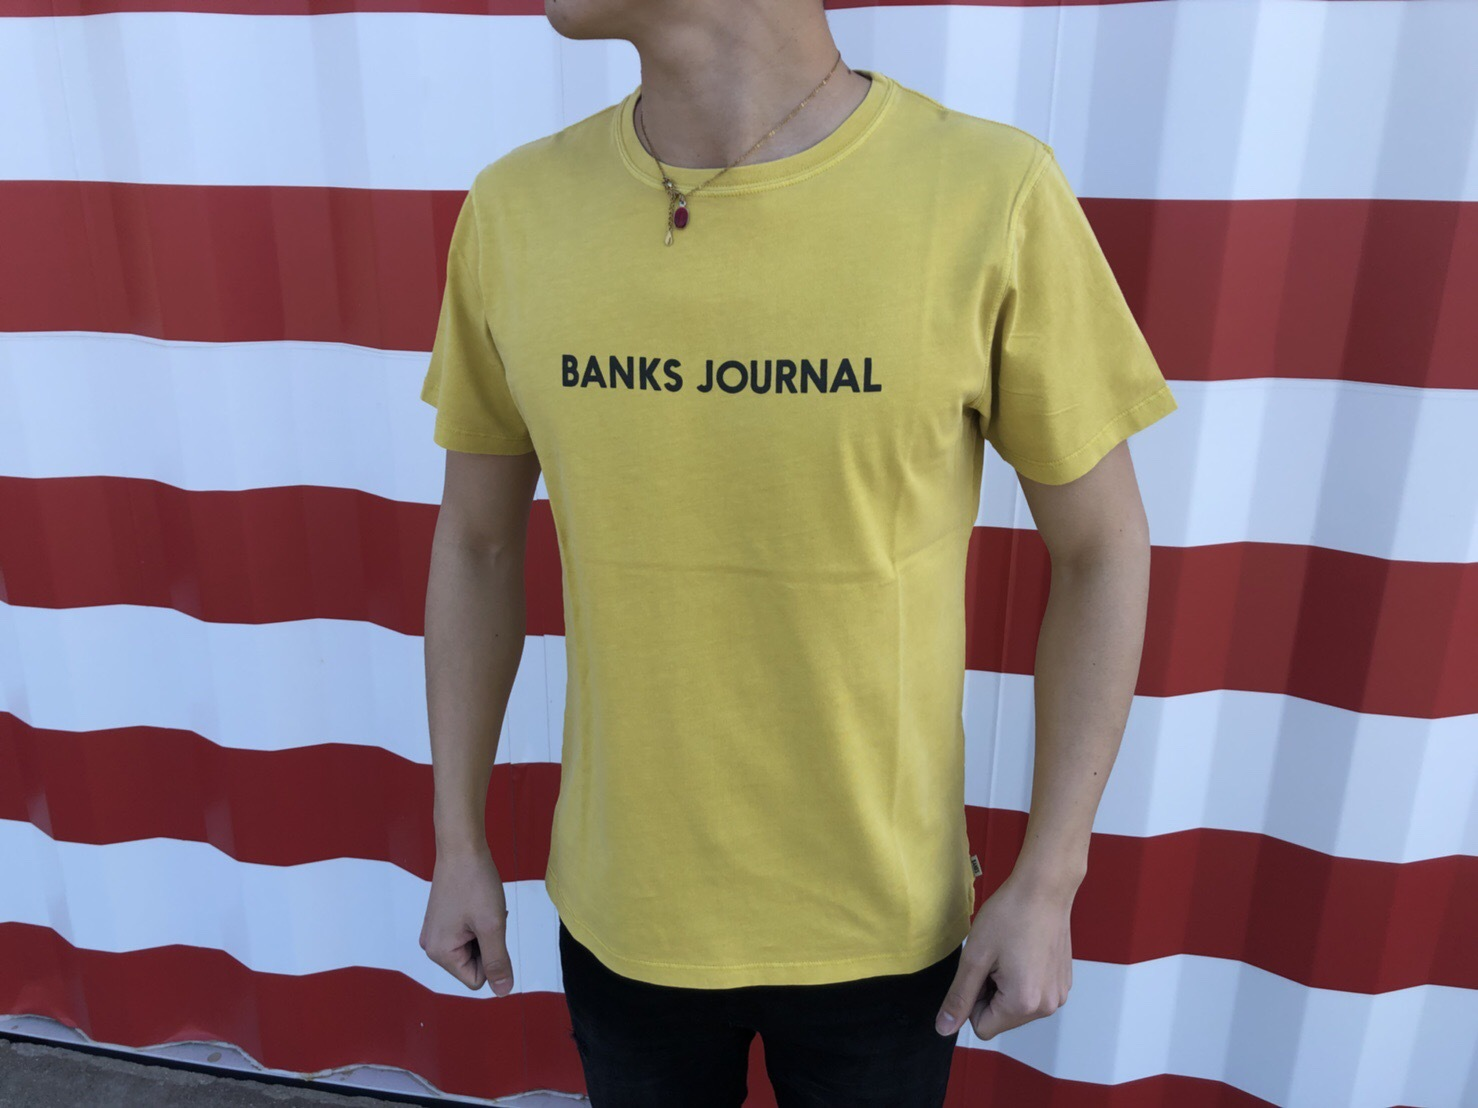 BANKS JOURNAL Tシャツ (old yellow)